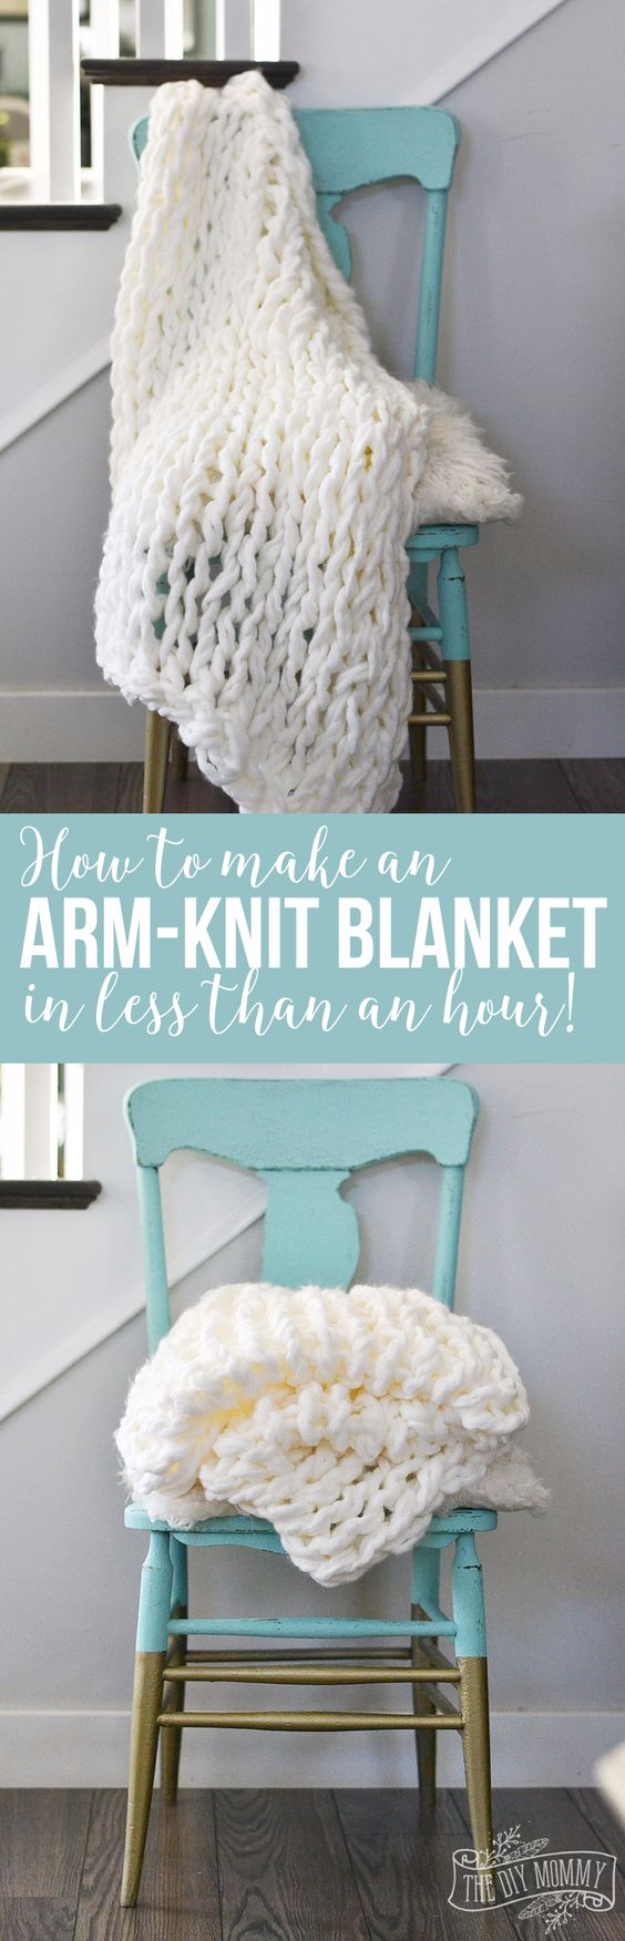 DIY Gift for the Office - Arm Knit Blanket - DIY Gift Ideas for Your Boss and Coworkers - Cheap and Quick Presents to Make for Office Parties, Secret Santa Gifts - Cool Mason Jar Ideas, Creative Gift Baskets and Easy Office Christmas Presents